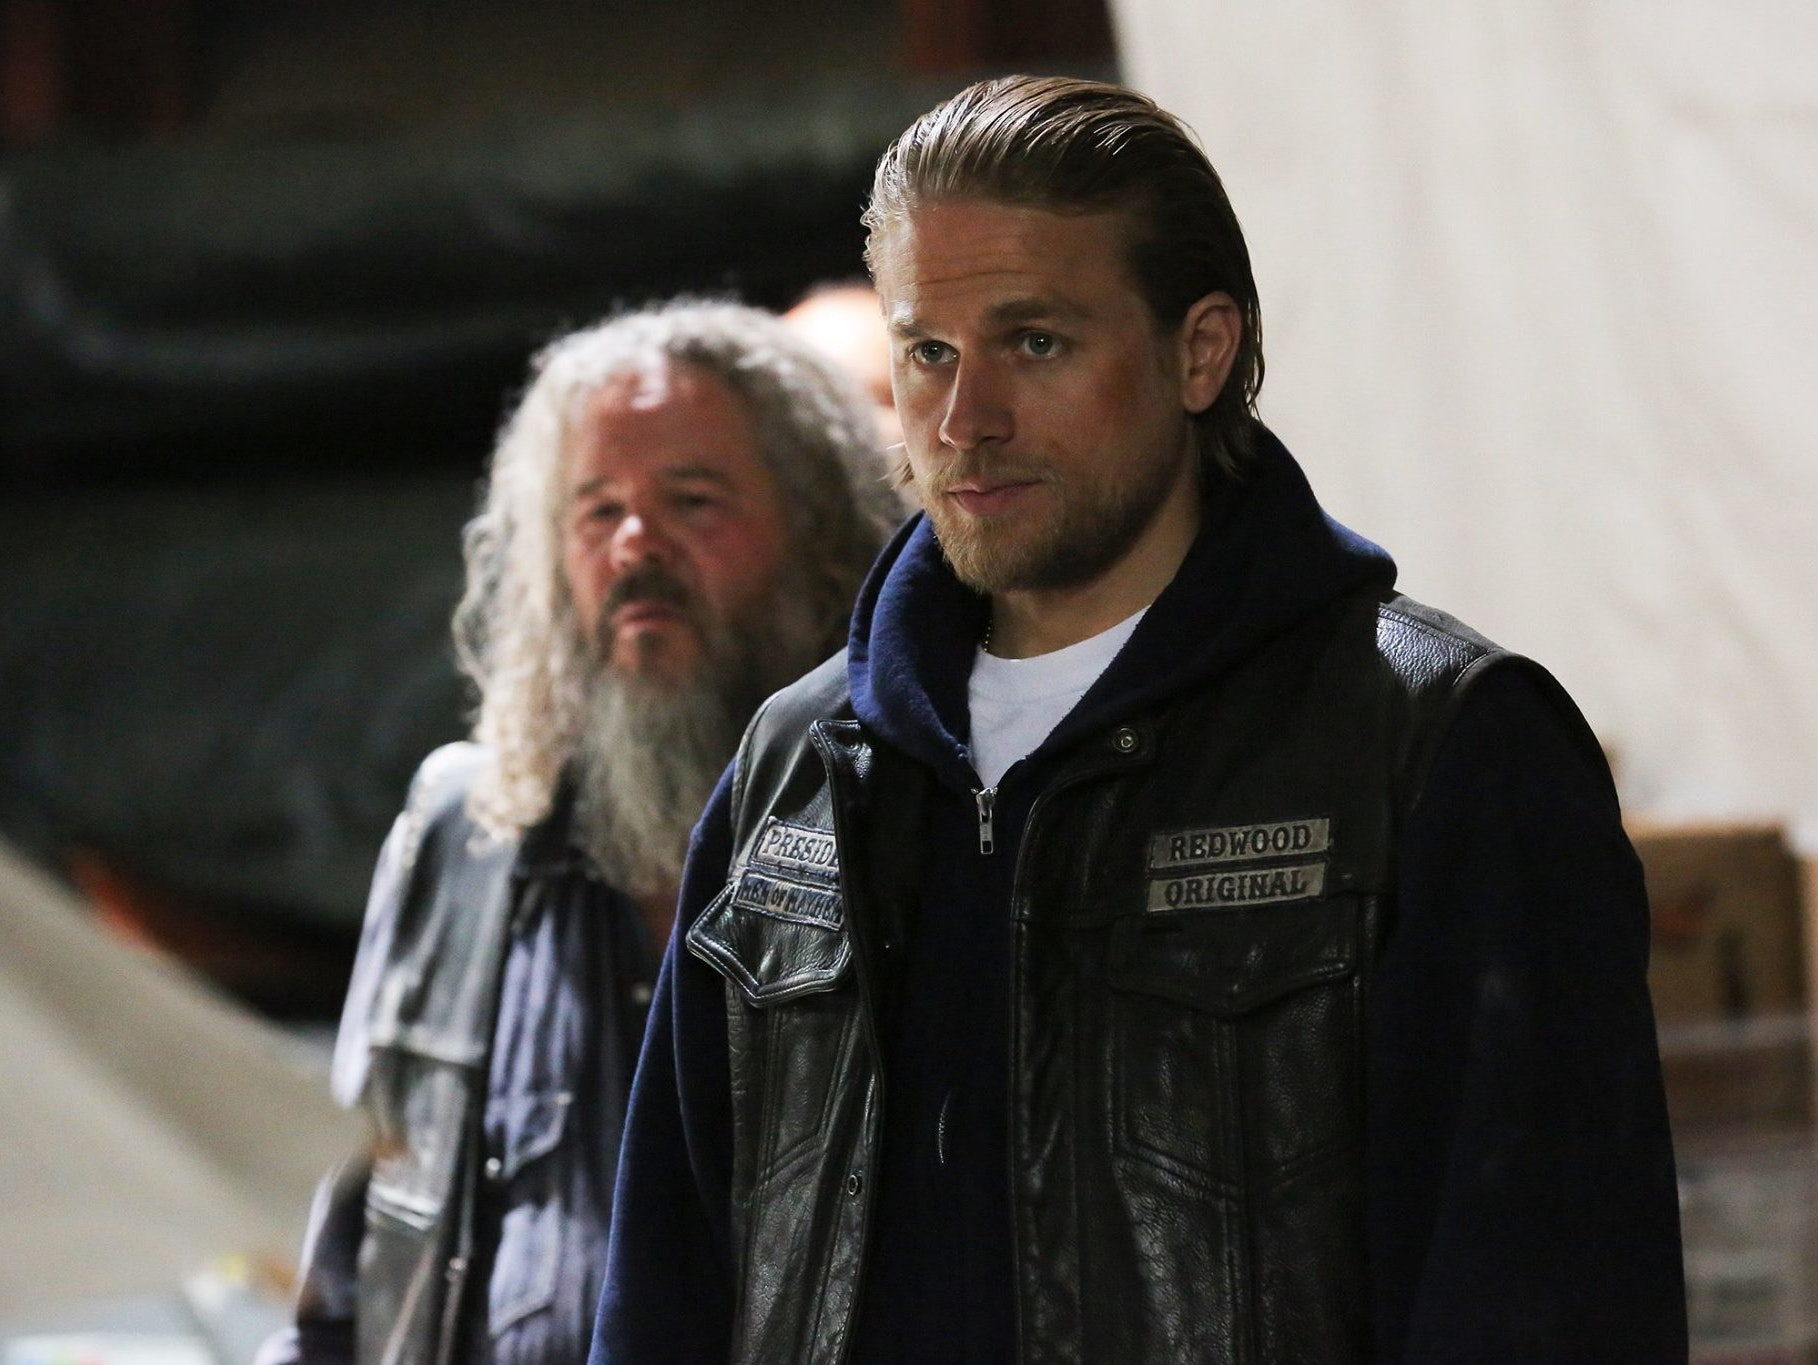 FX's 'Sons of Anarchy' Spin-Off Gets a Pilot but No Jax Teller